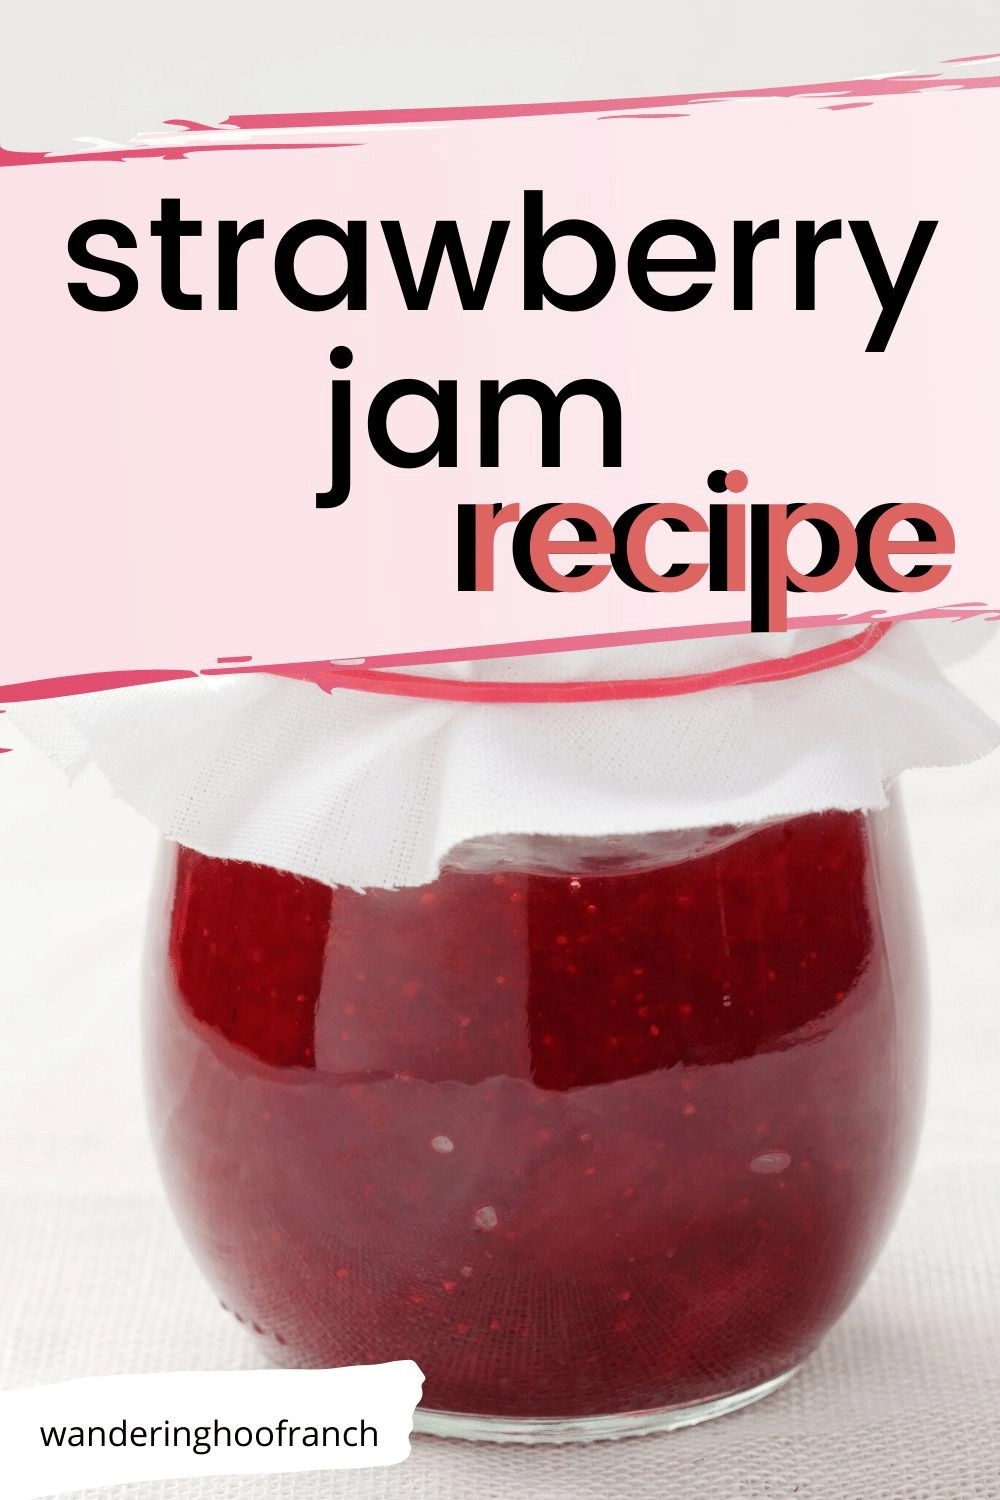 strawberry jam recipe image